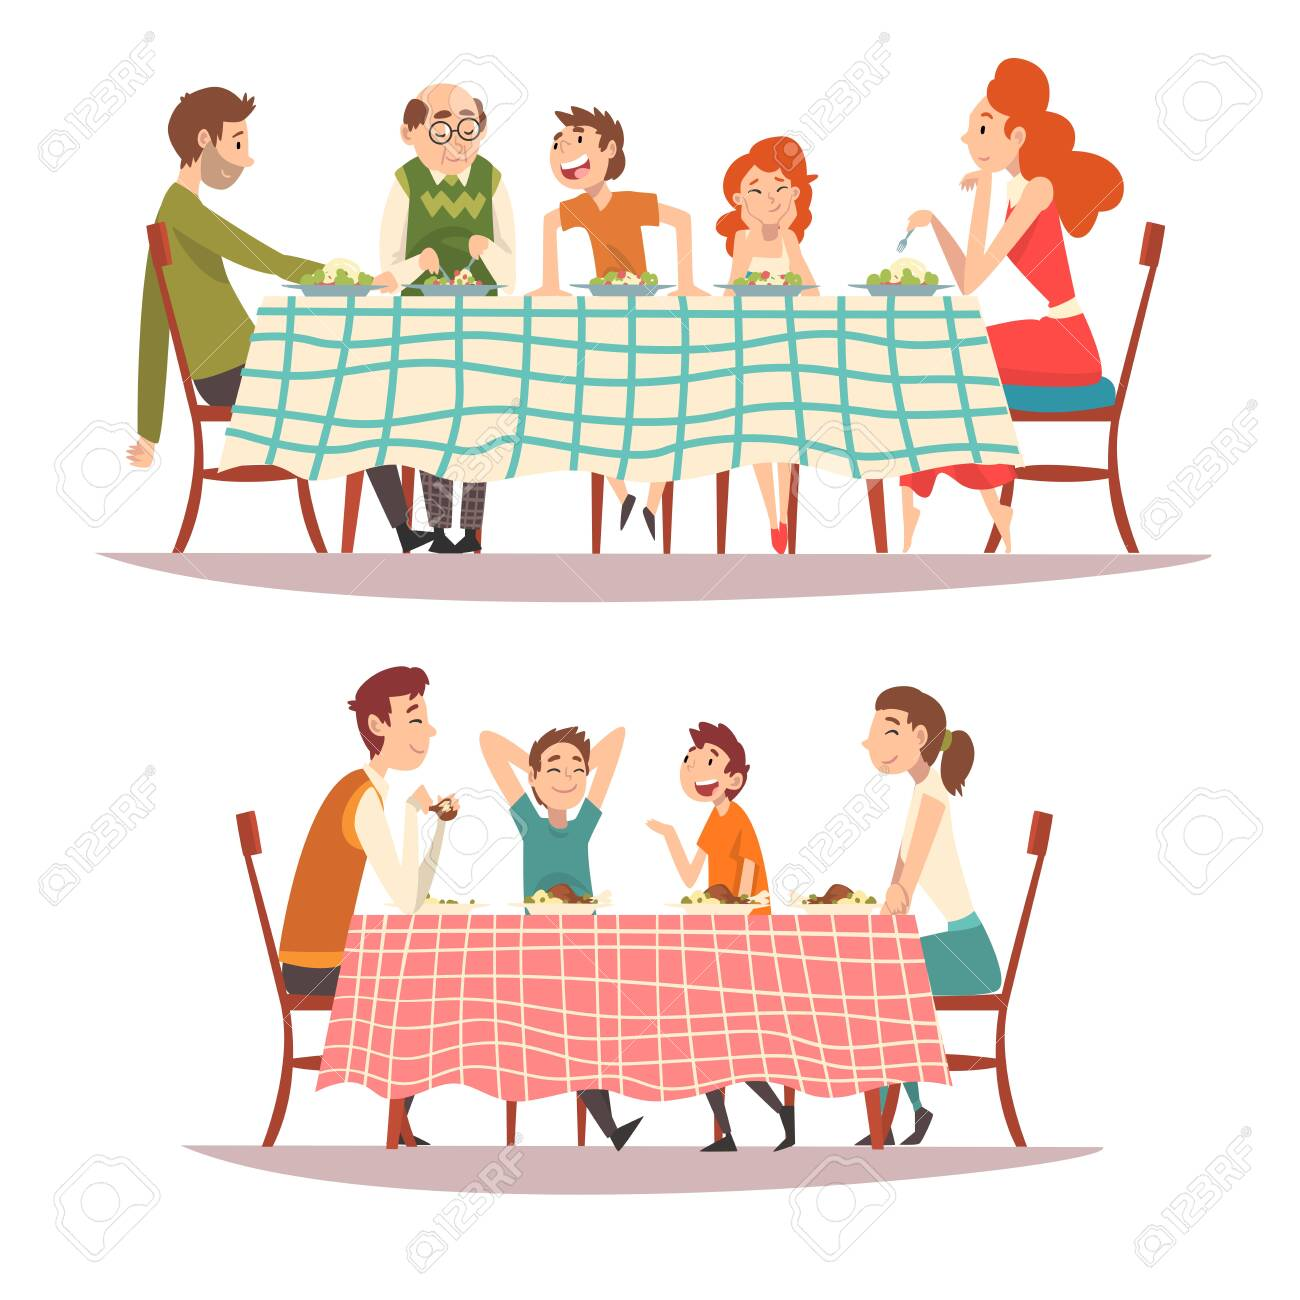 Happy Families Sitting at Kitchen Table with Checkered Tablecloth Set, Eating Food and Talking to Each Other, Happy Parents and Children Eating Together Vector Illustration on White Background. - 128165802